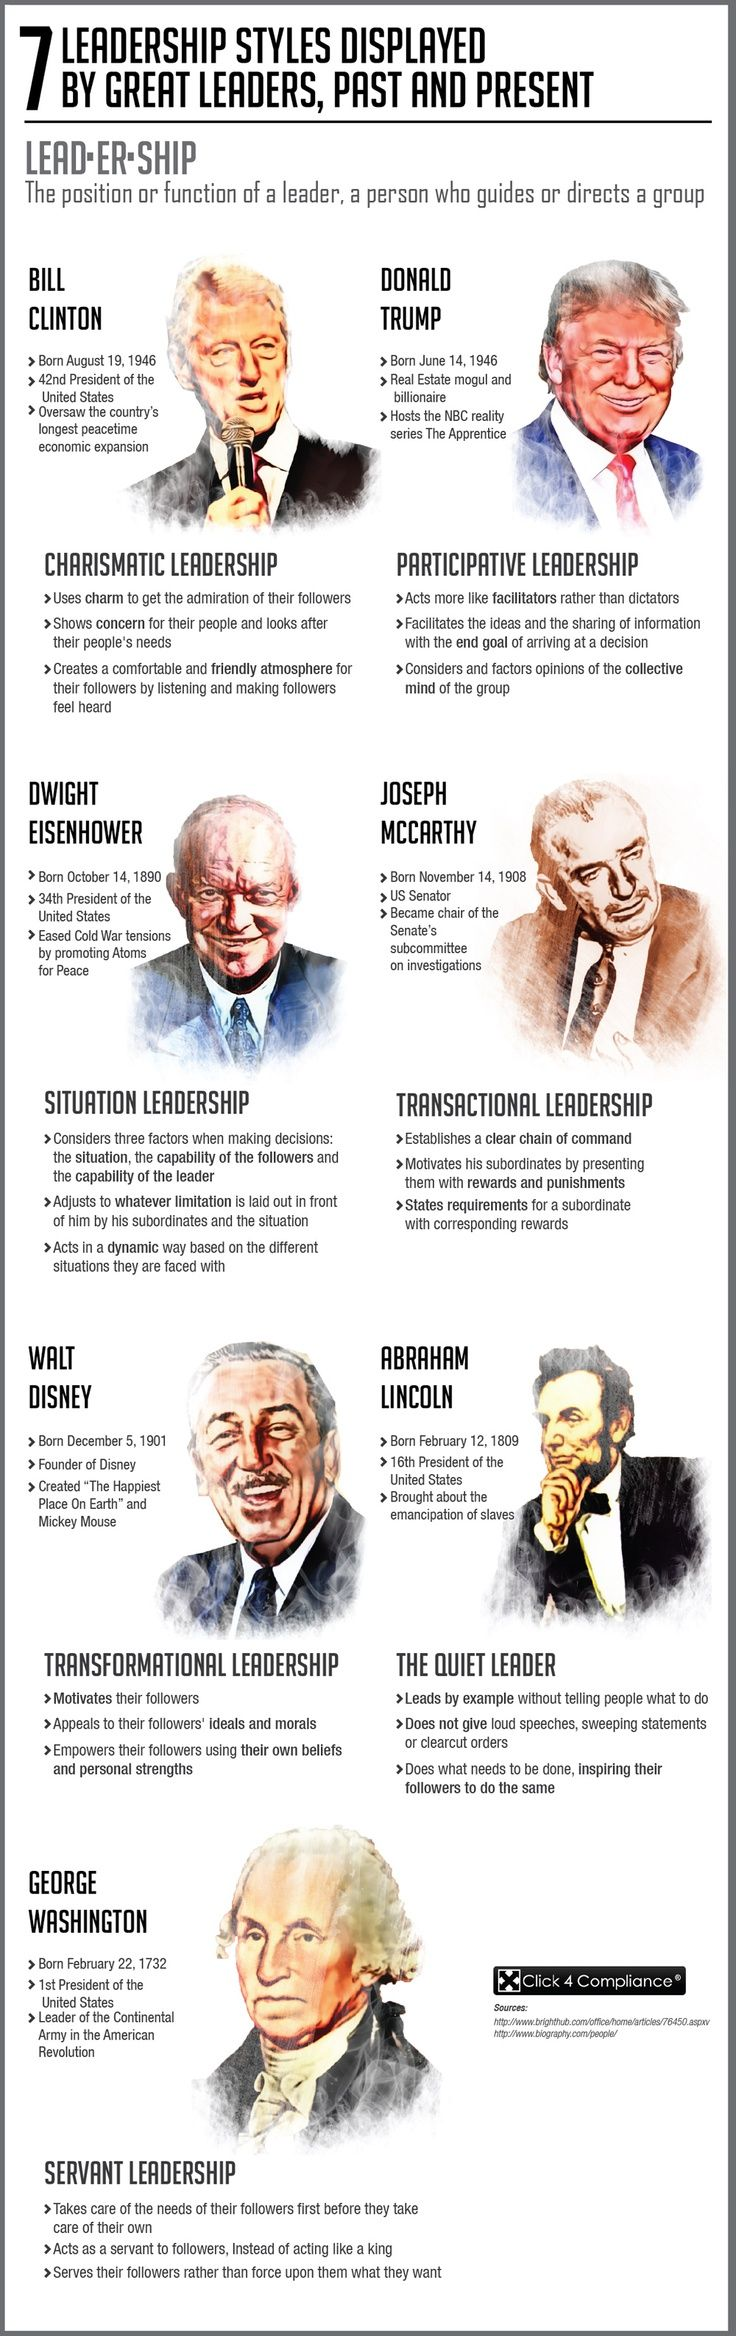 7 #Leadership Styles Displayed by Great Leaders, Past and Present | #Infographic…